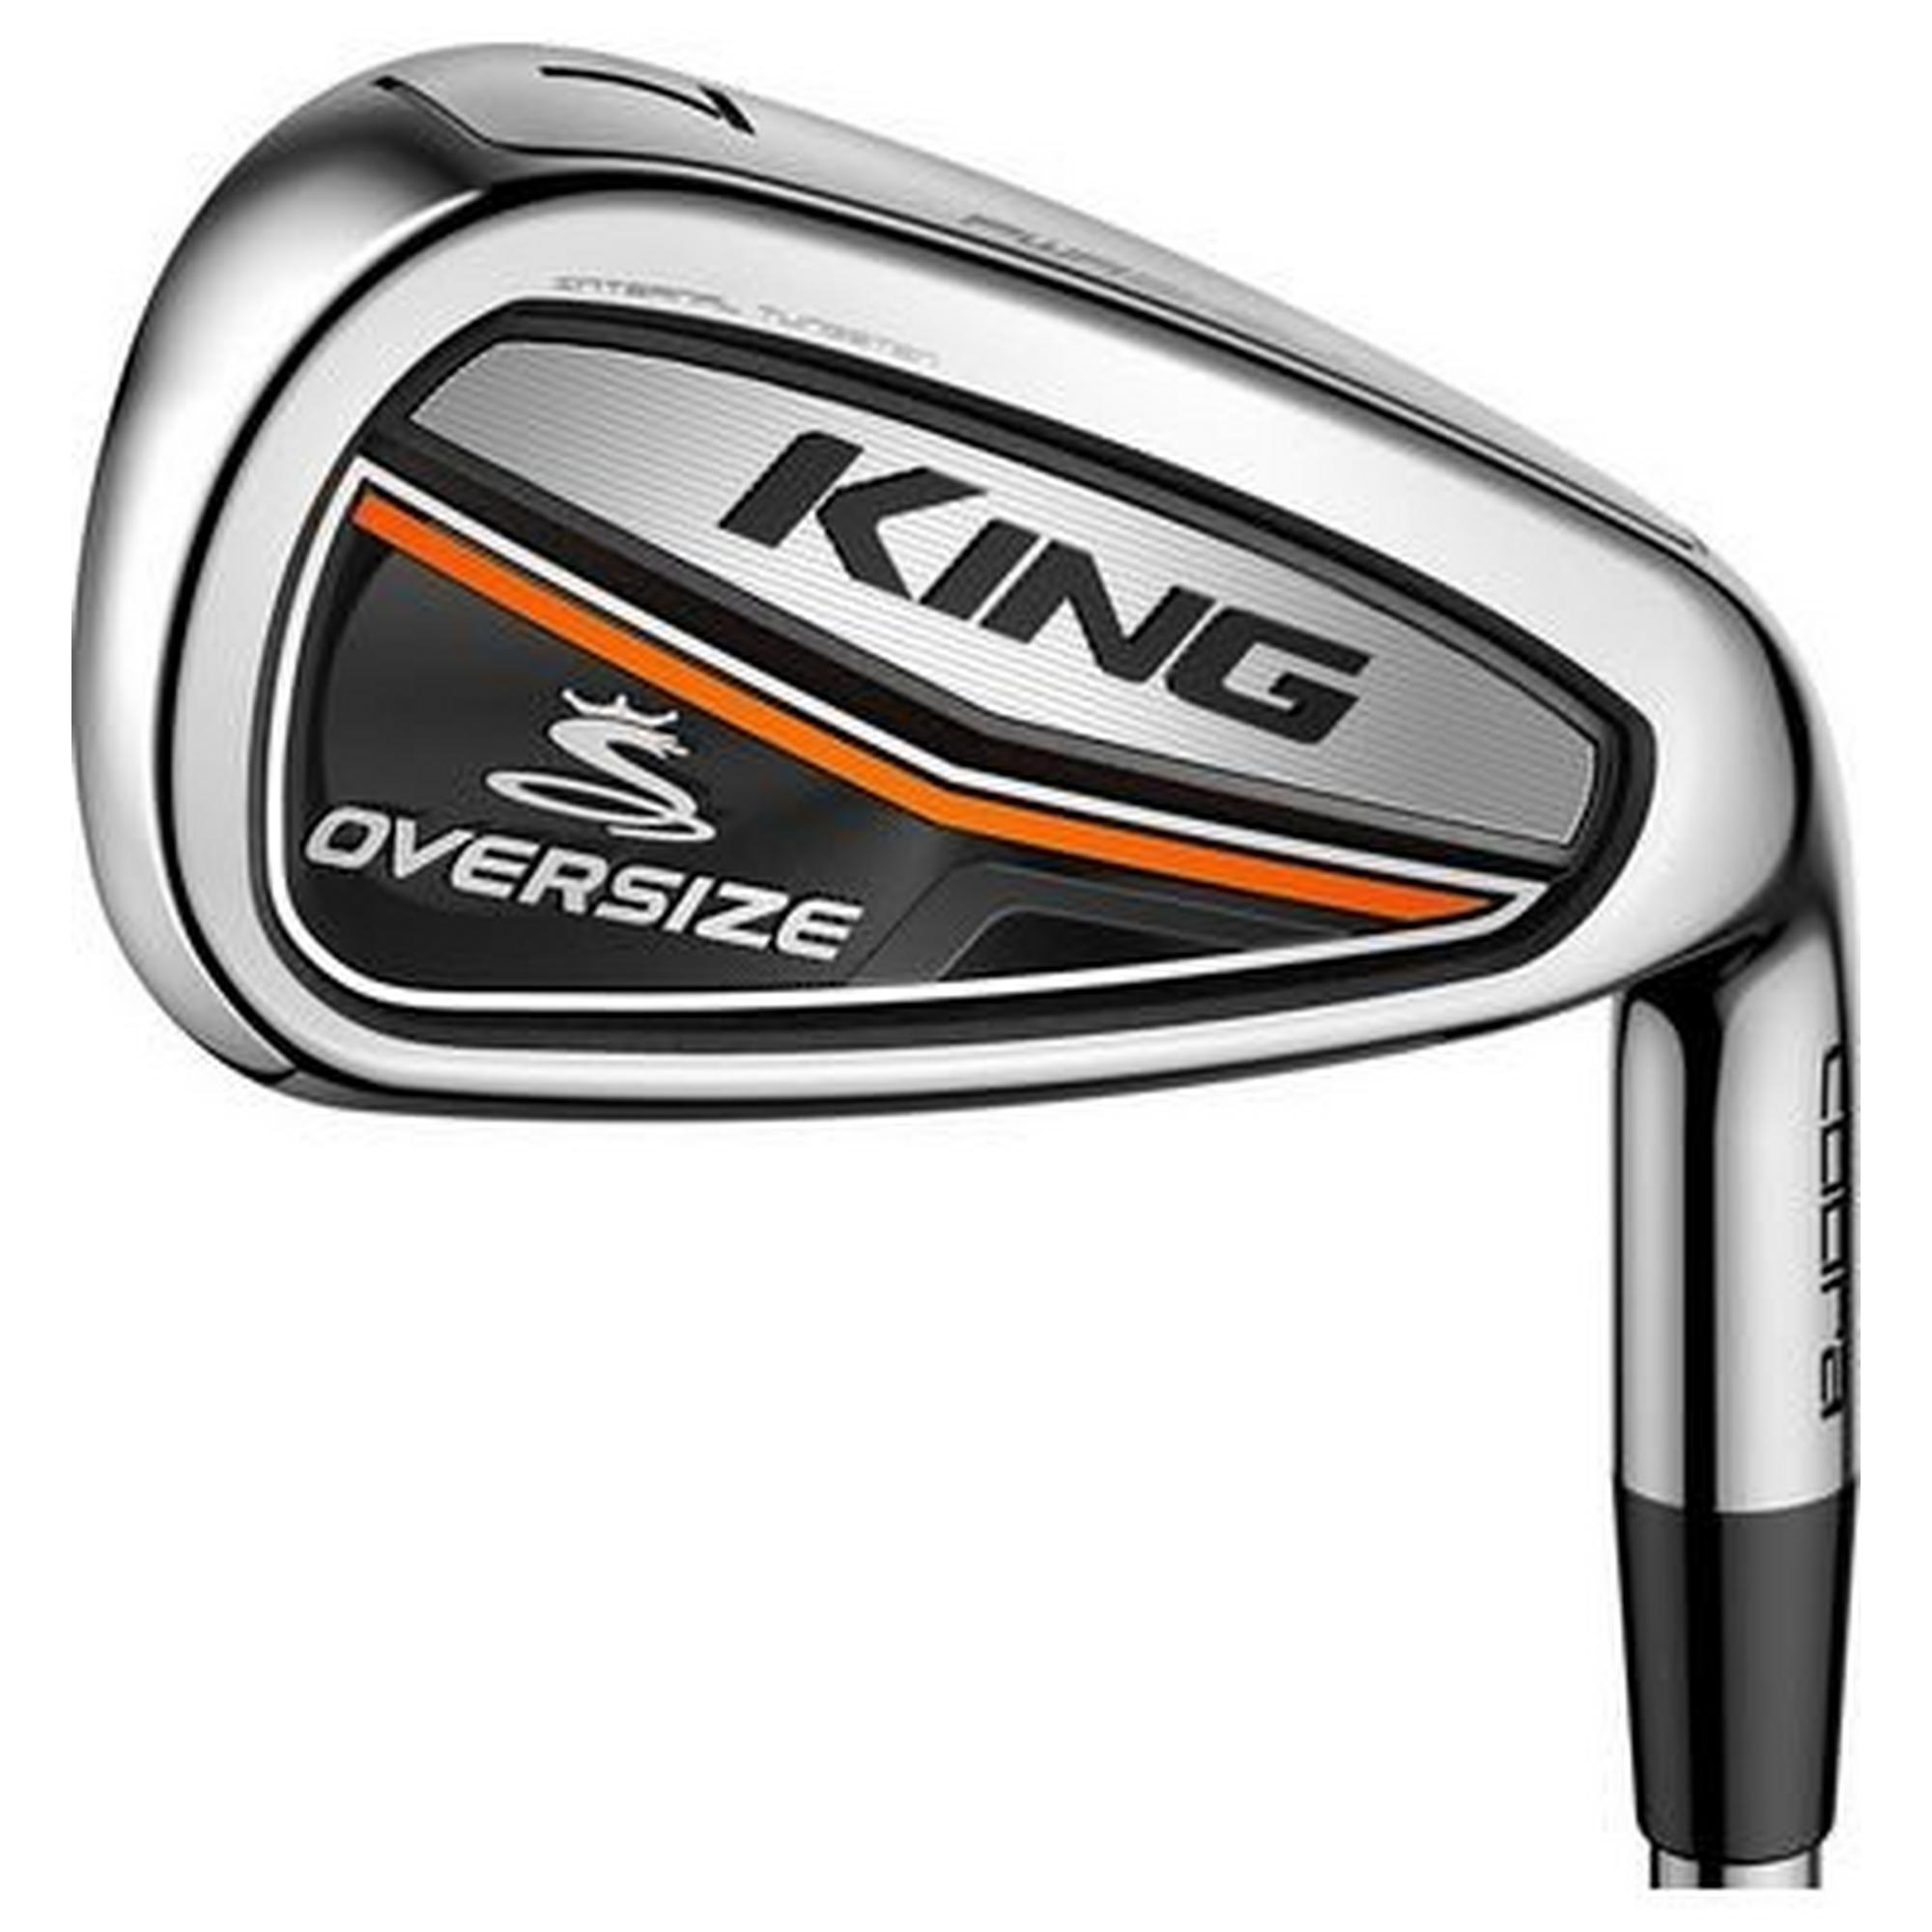 King OS 4-PW, GW Iron Set with Graphite Shafts